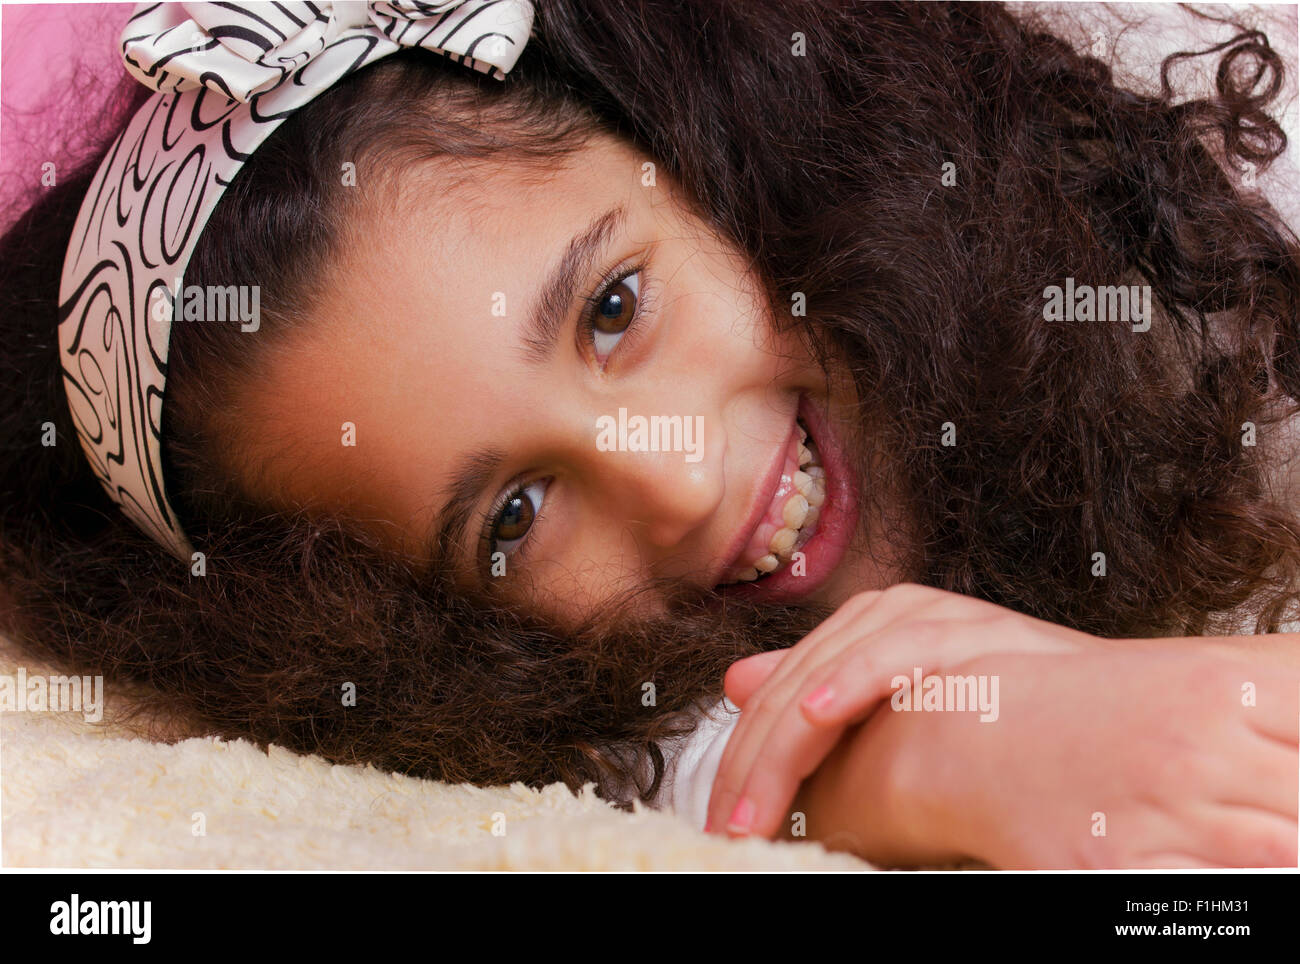 Smiling child brunette swarthy girl lying in the bed - Stock Image